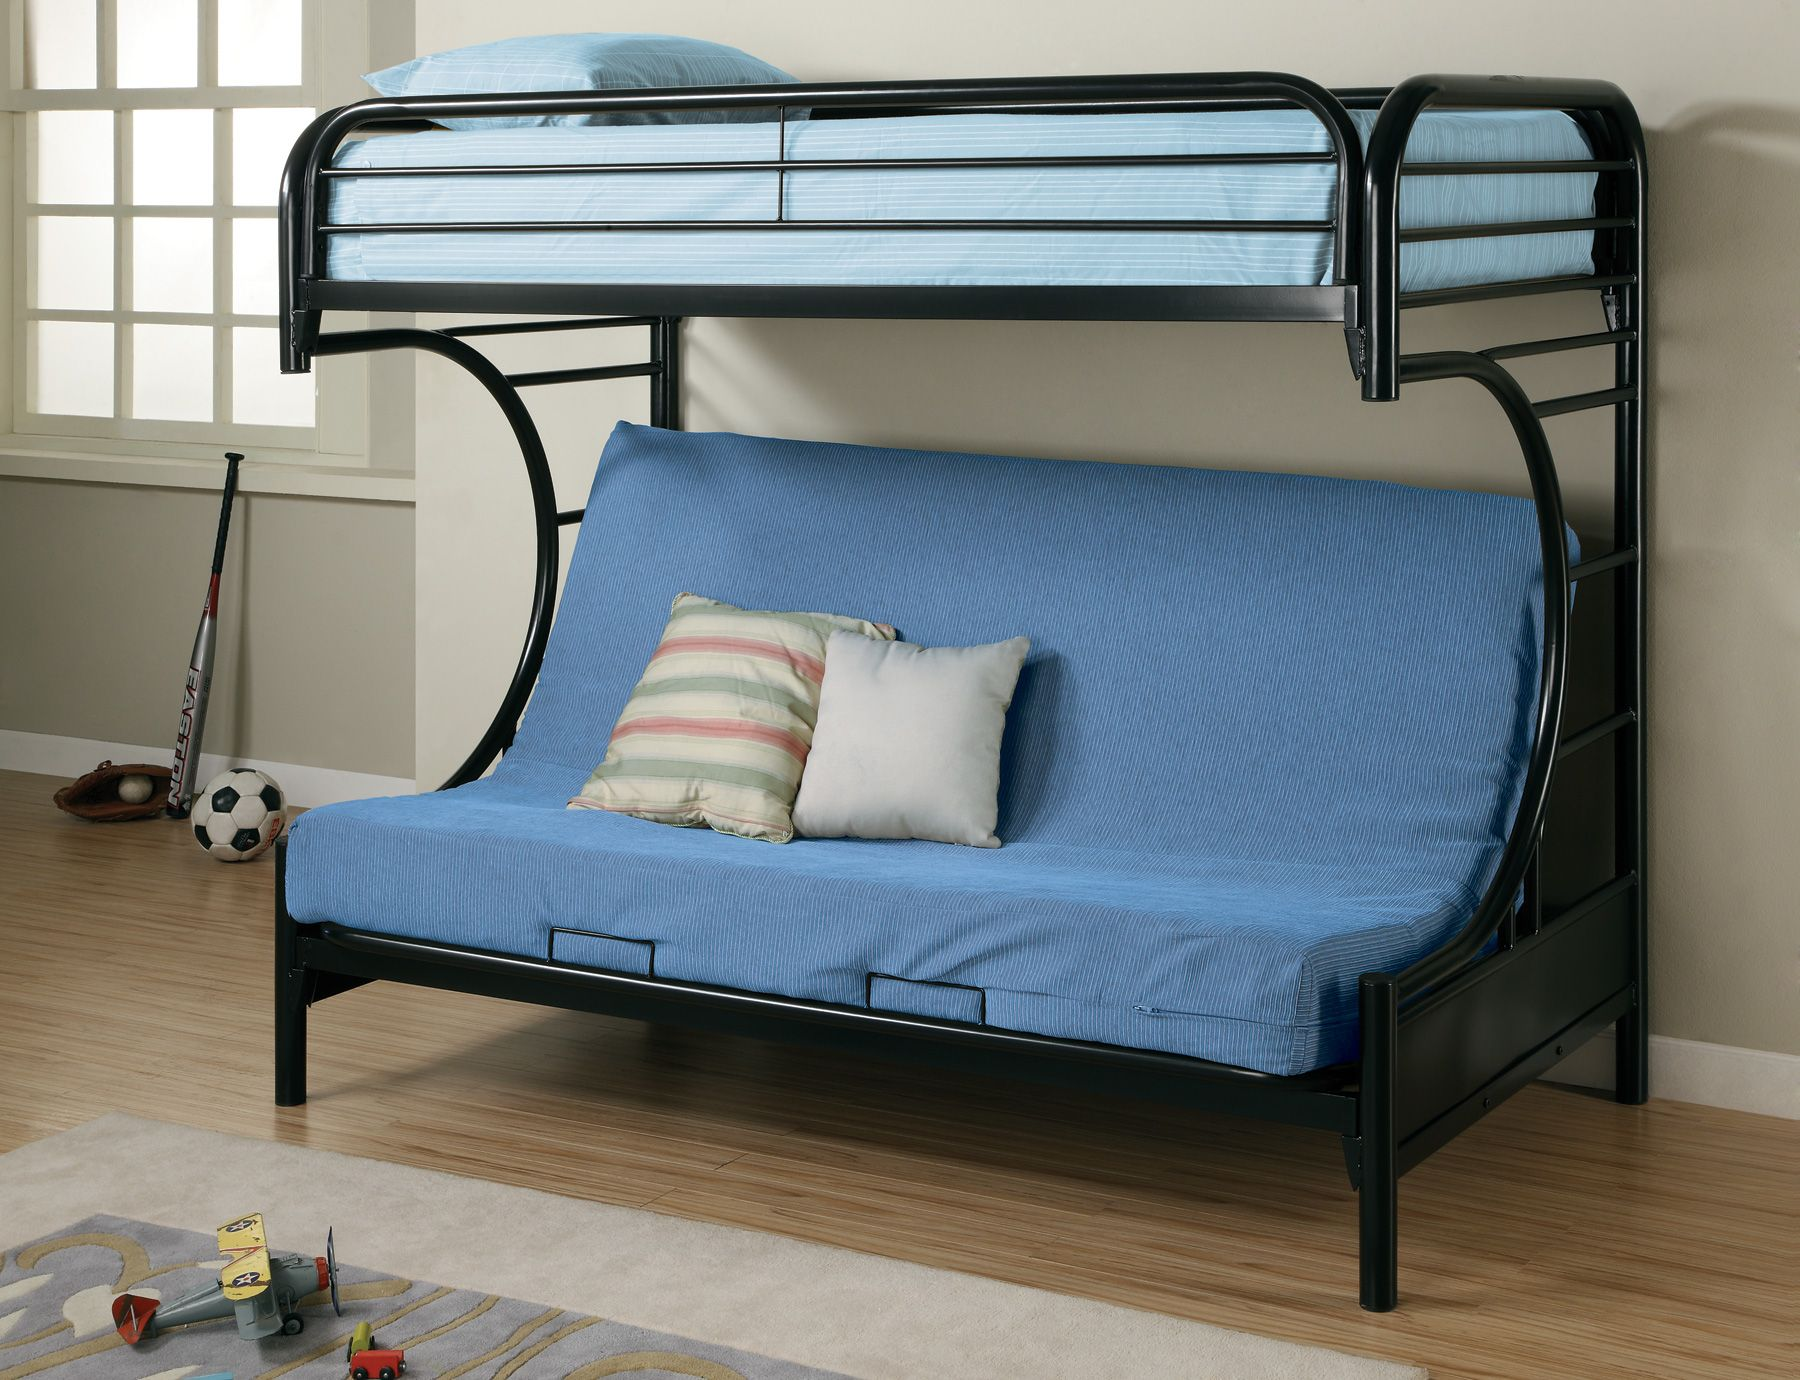 Bed Entrancing Style Twin Over Full Frame Dimensions Black Metal Bunk S Design And